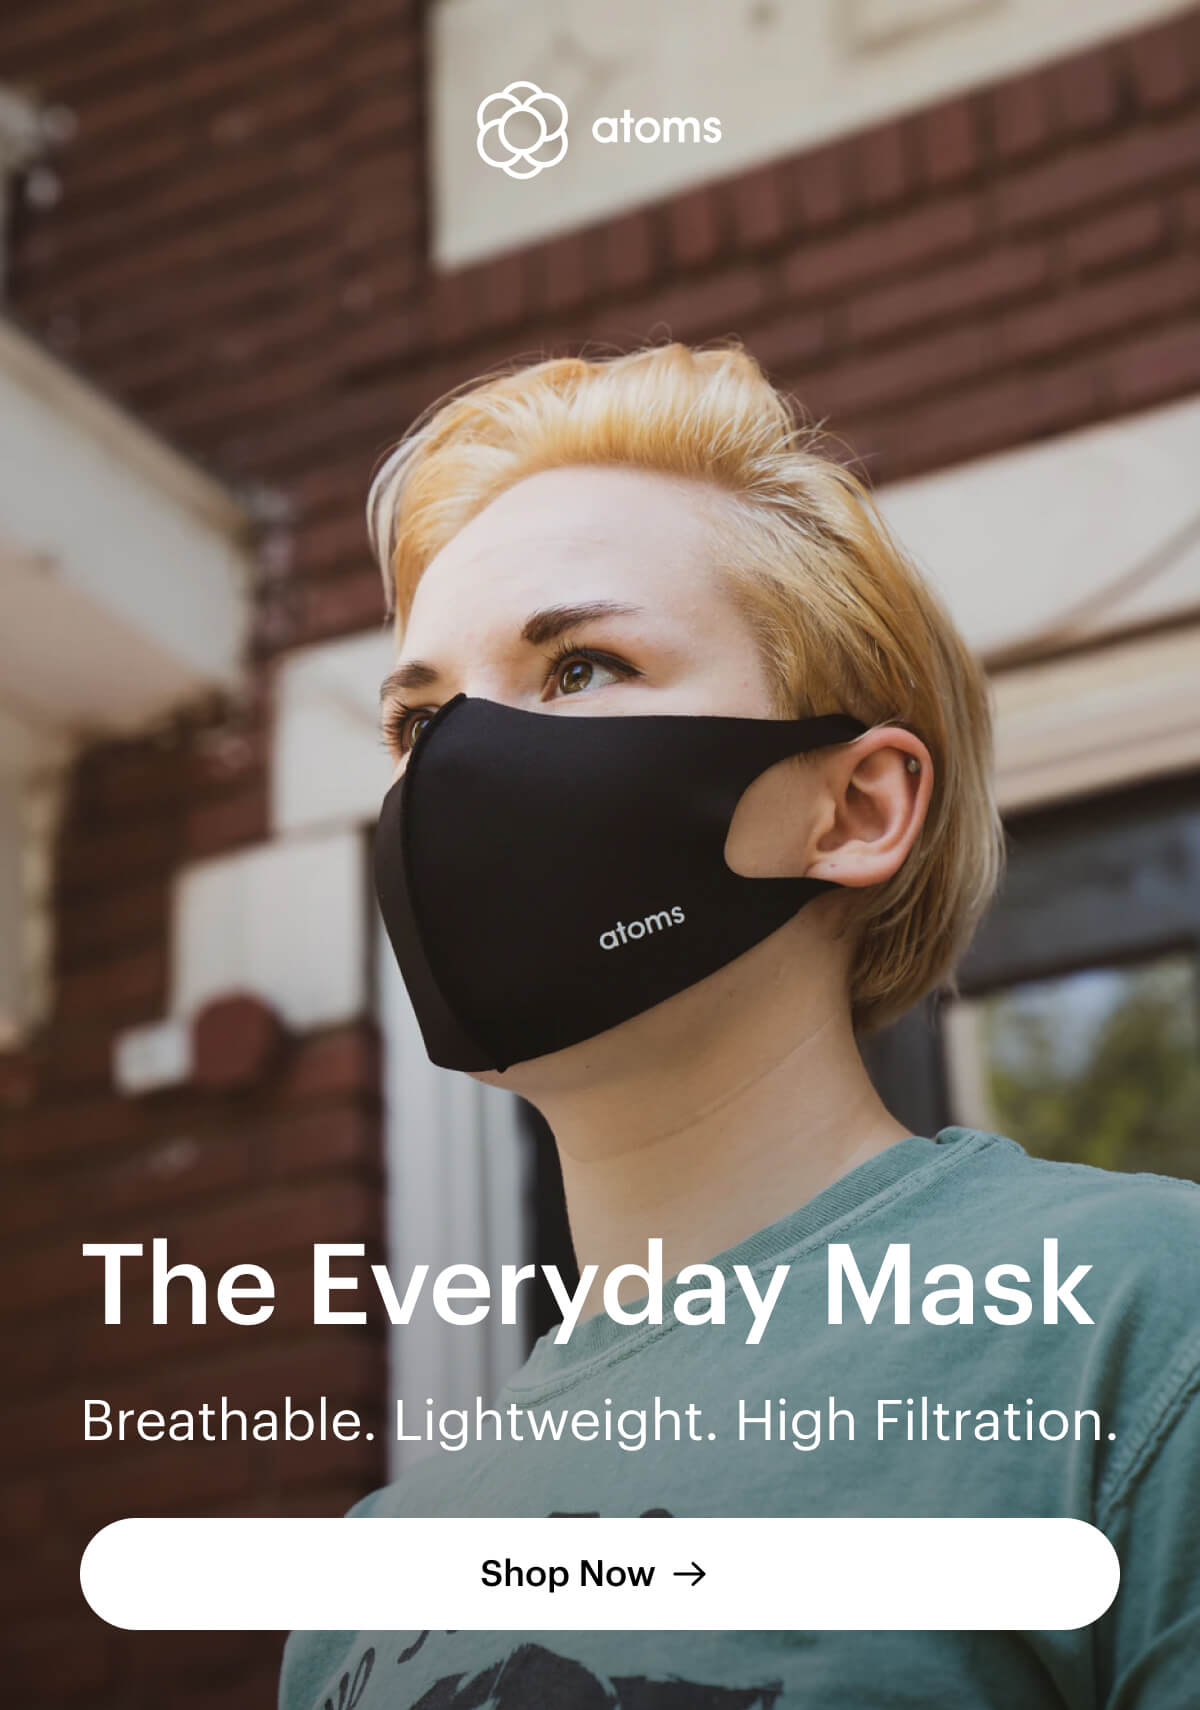 Atoms Everyday Mask. Breathable. Lightweight. High Filtration. Shop Now.